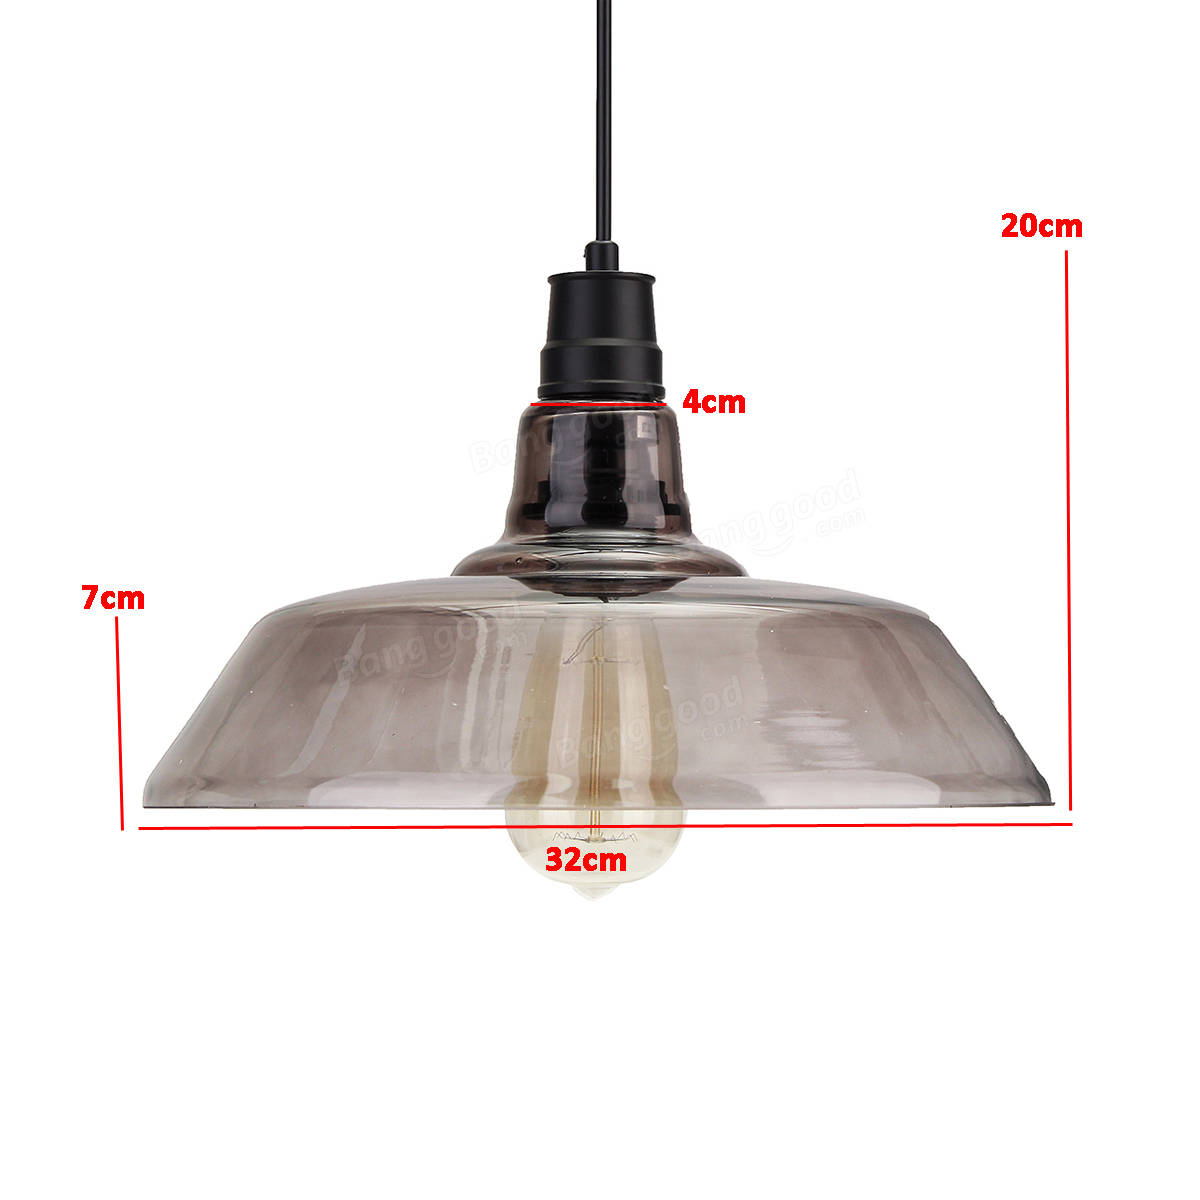 Industrial retro vintage pipe glass edison bulb pendent ceiling industrial retro vintage pipe glass edison bulb pendent ceiling light bar living room lamp mozeypictures Image collections